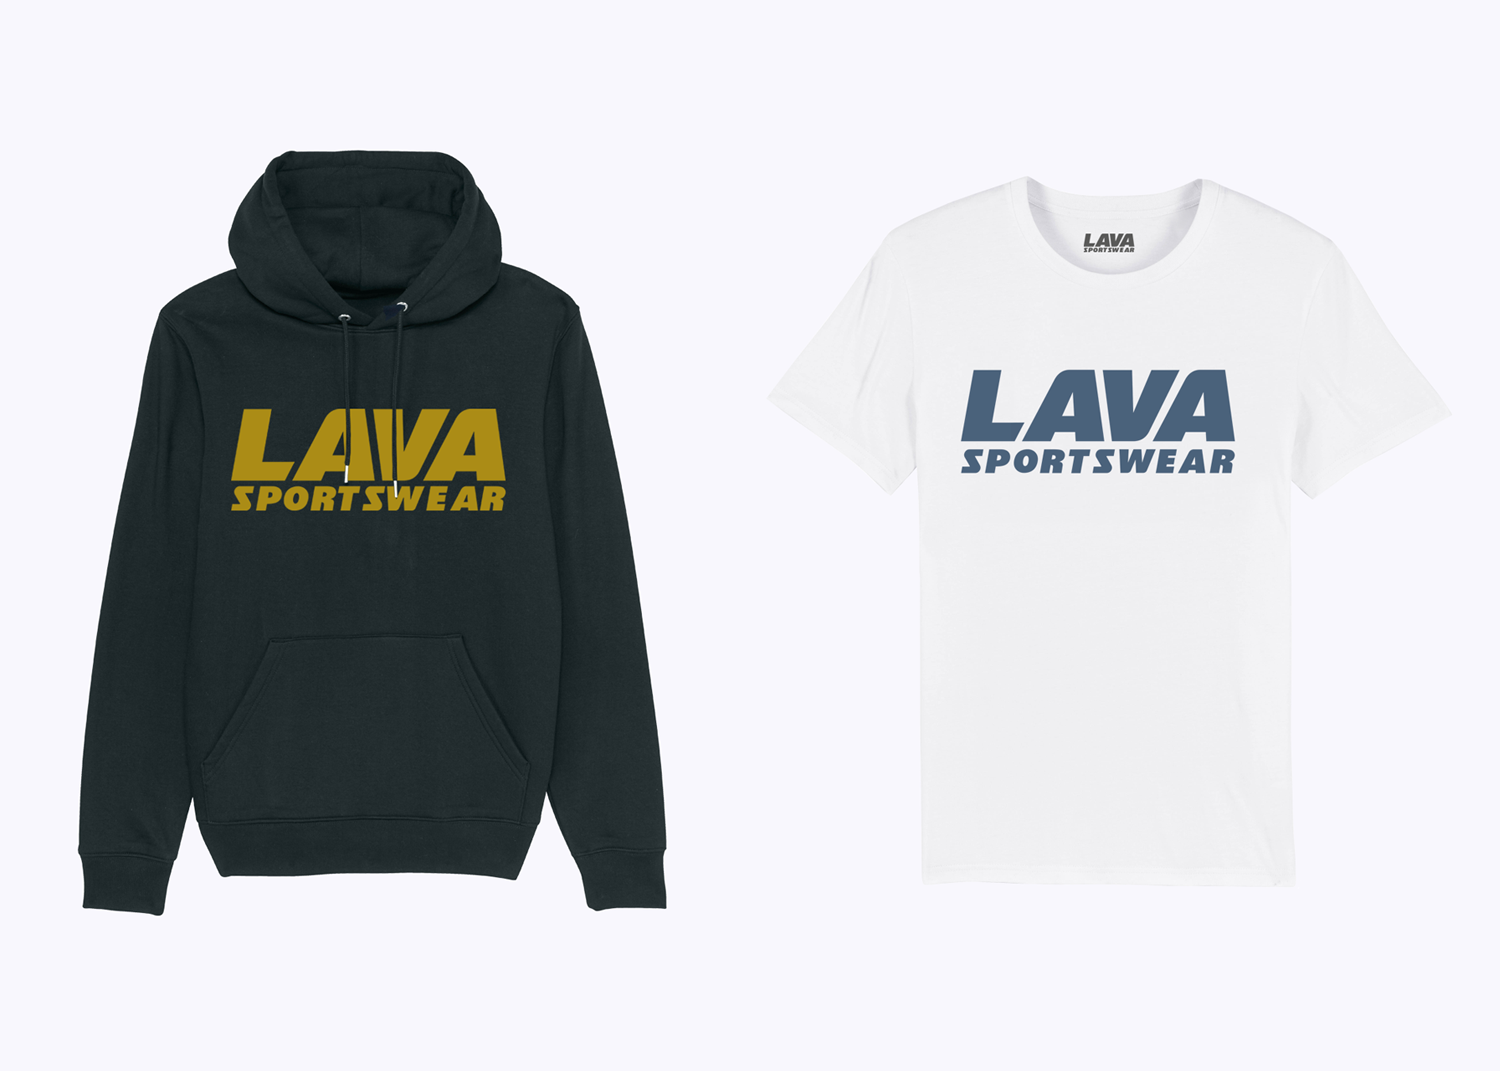 screen printed Lava Sportswear apparel